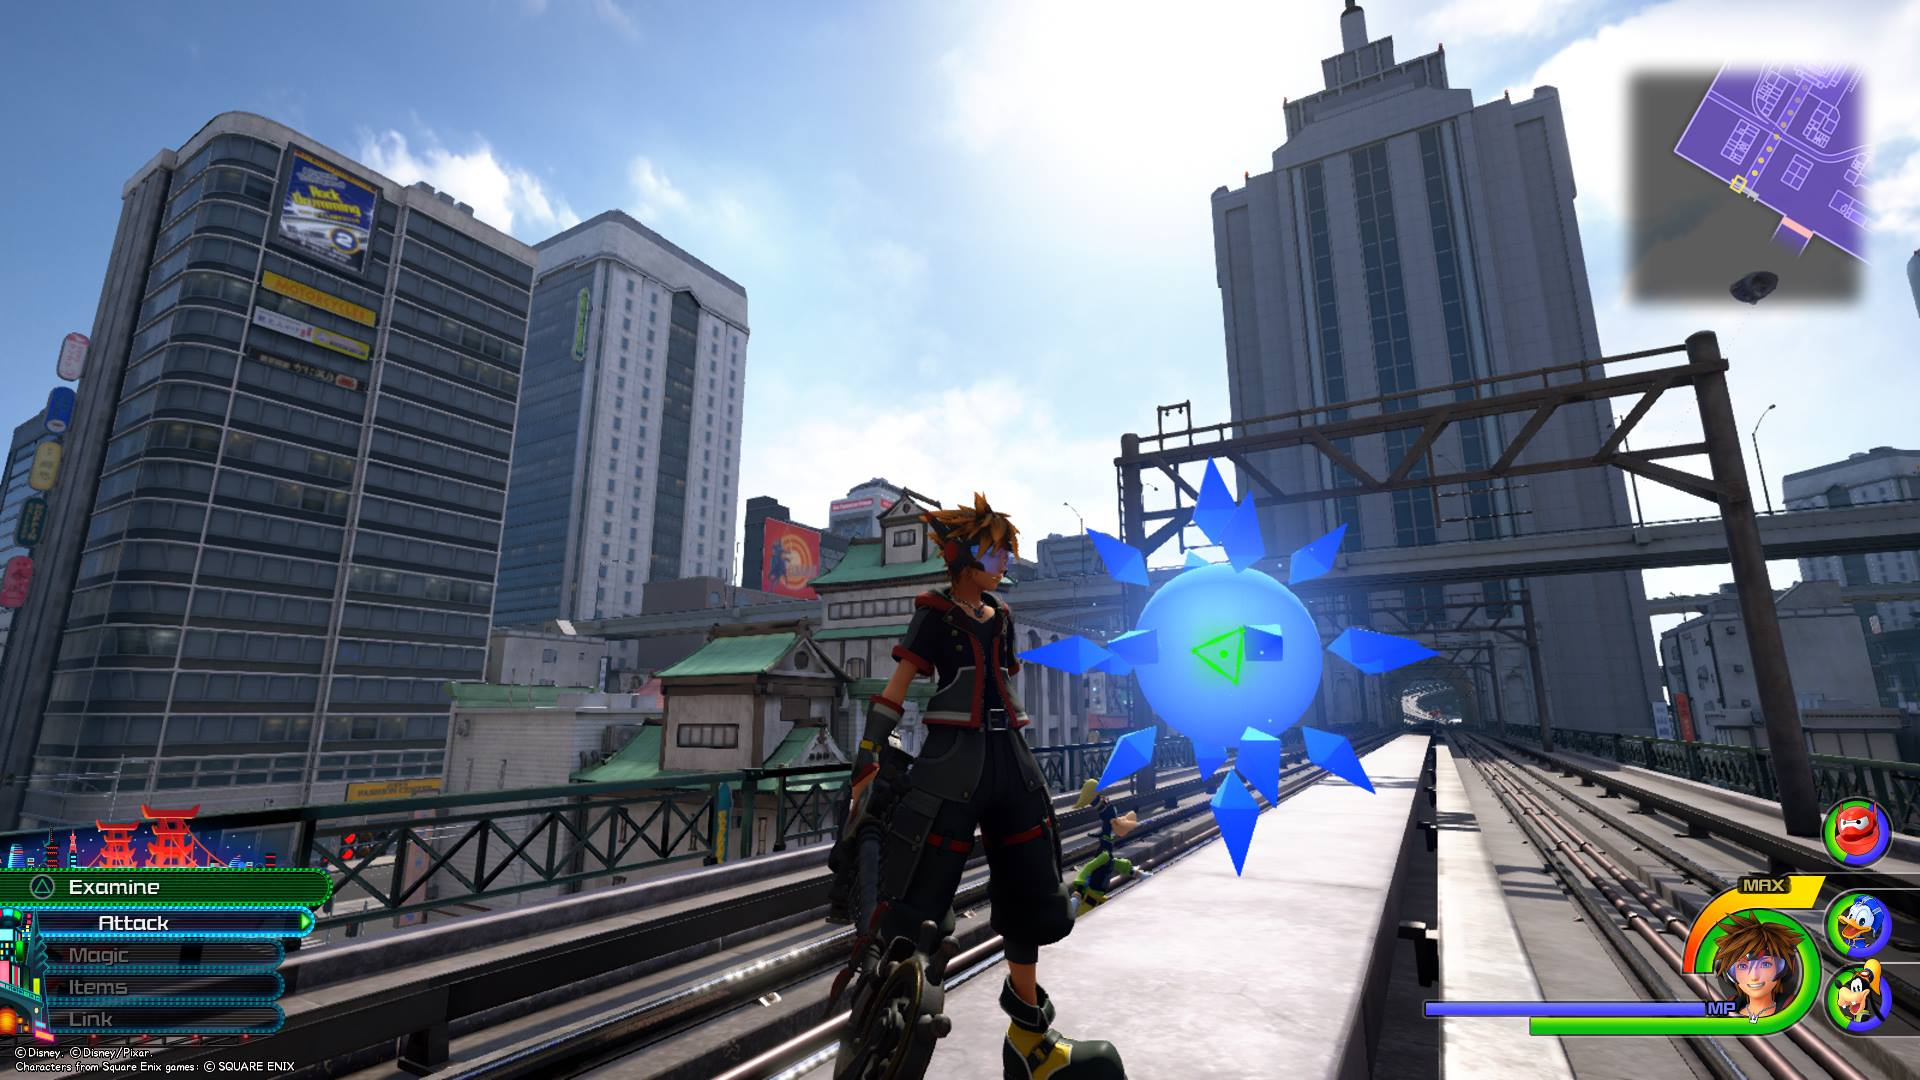 The eleventh Battlegate in Kingdom Hearts 3 can be found in the North District area of San Fransokyo.